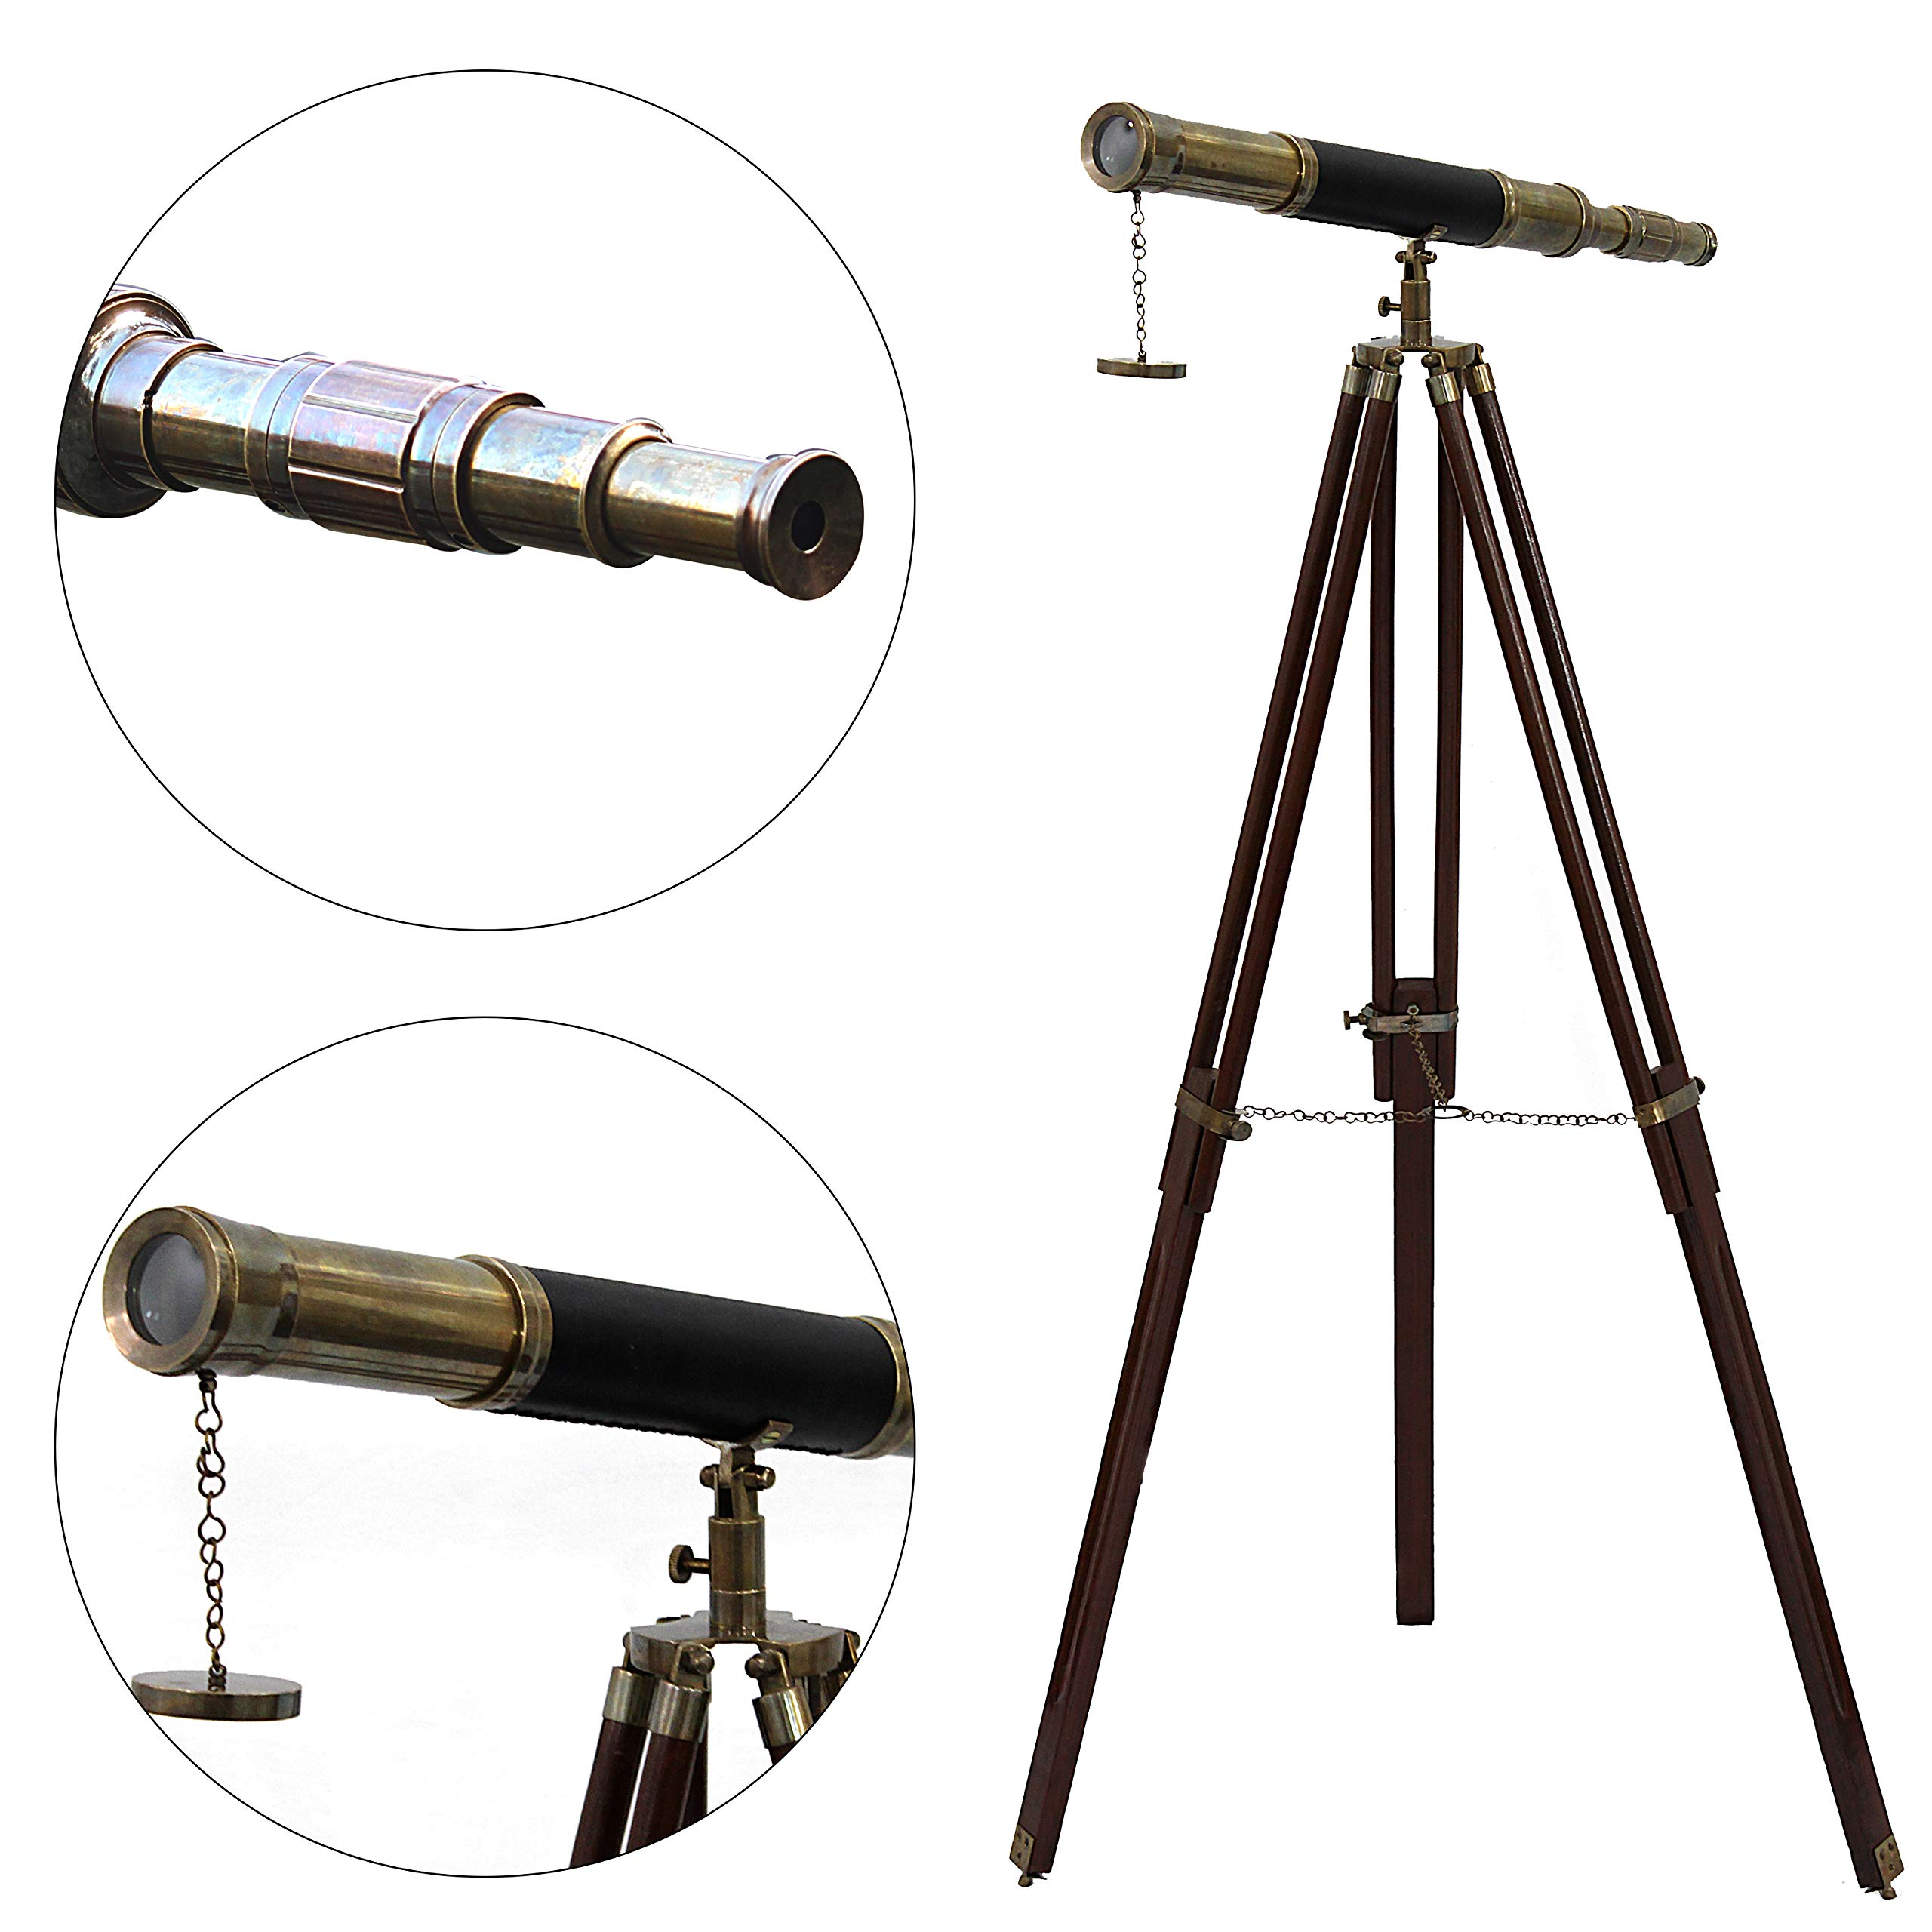 Sailor Boat Antique Telescope Black Leather Wooden Stand Marine Royal Telescopes by Collectibles Buy